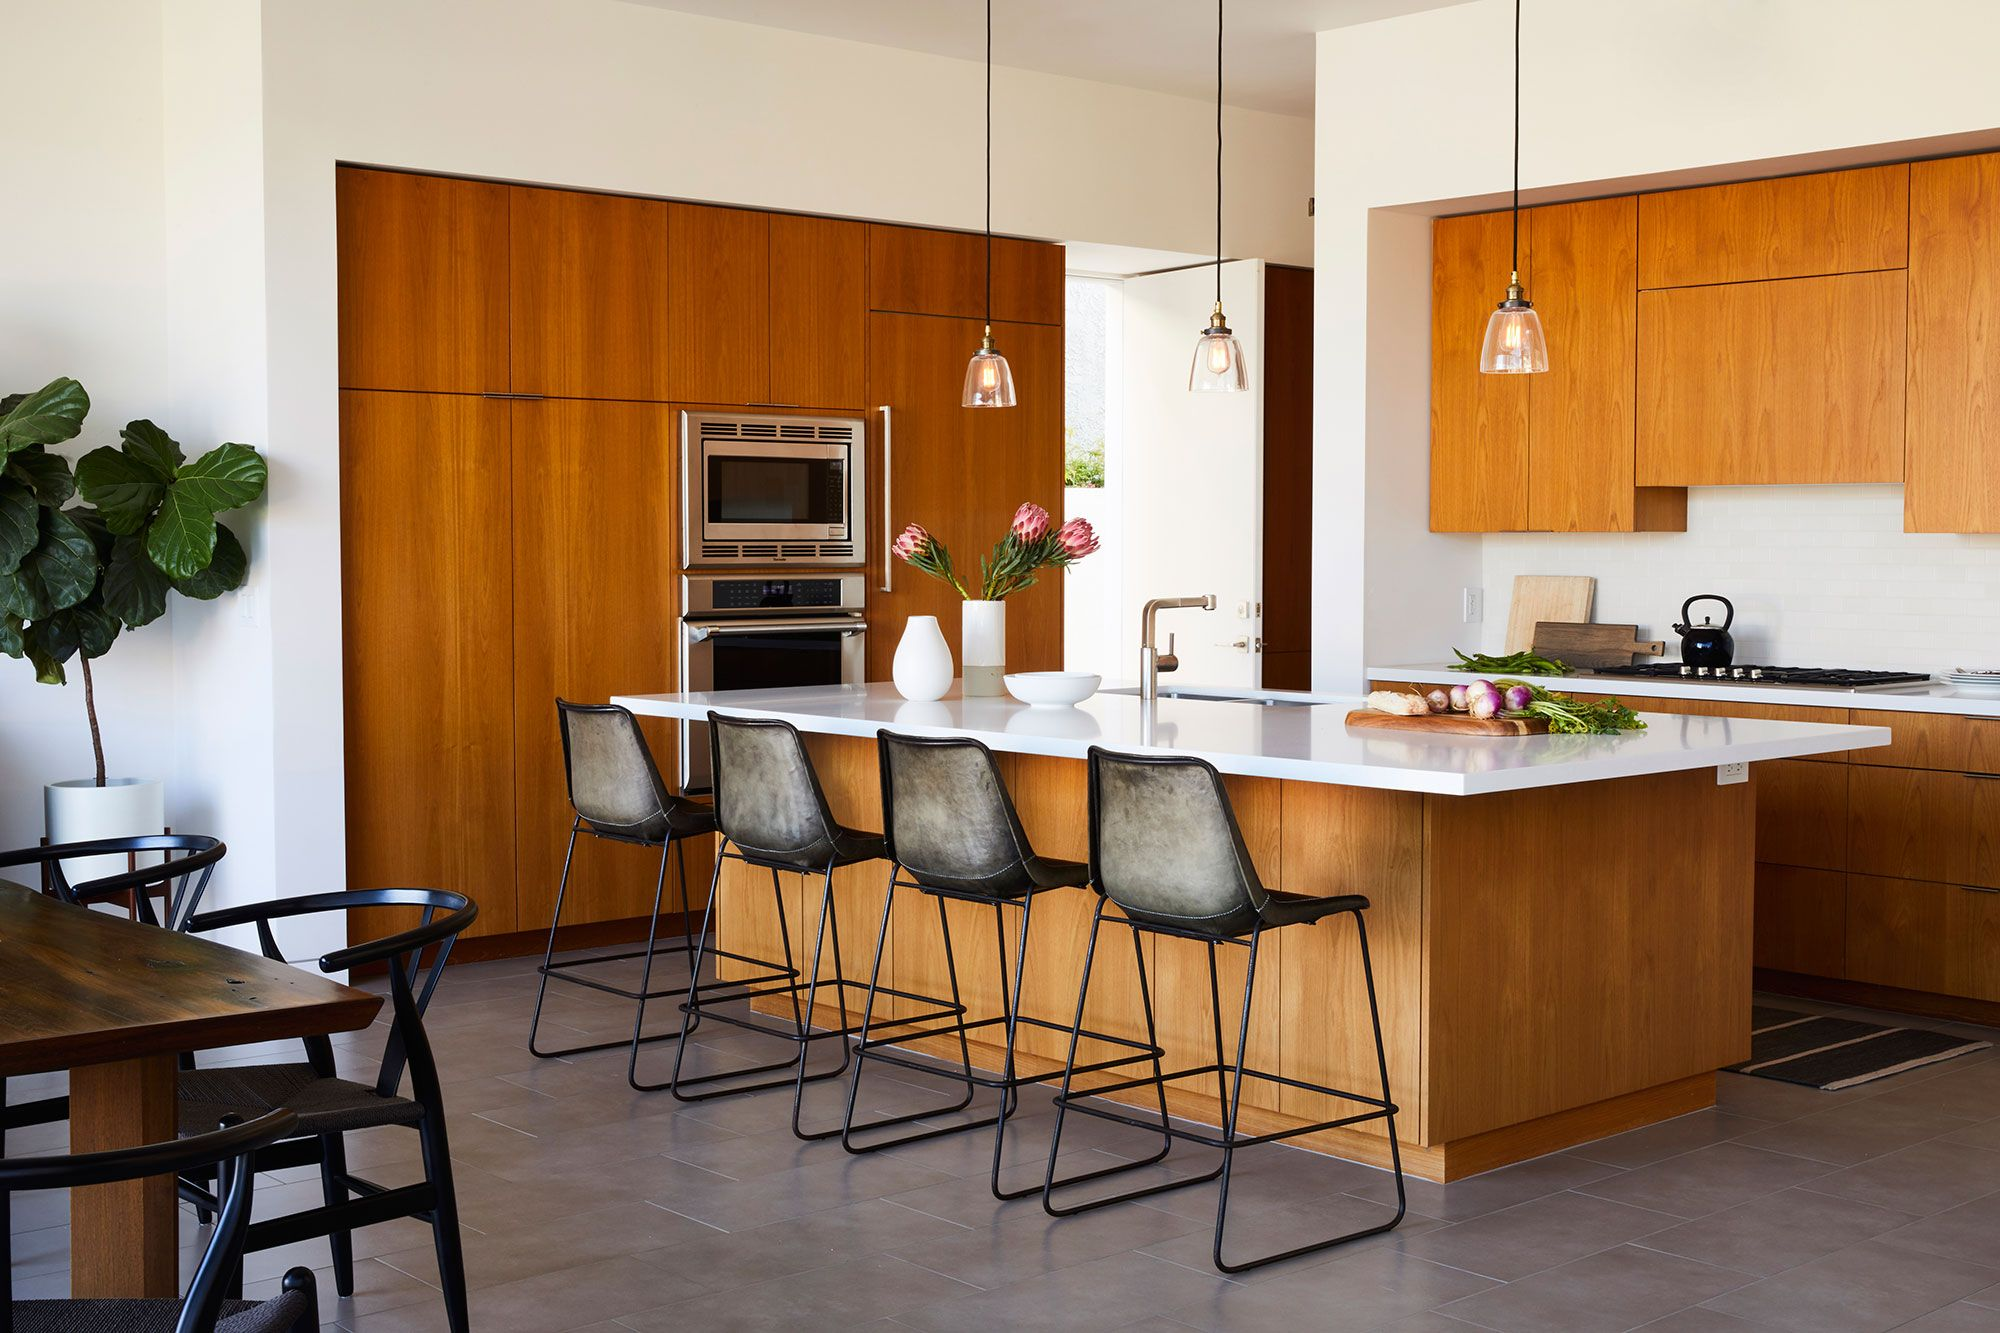 10 Modern Cabinets Thatu0027ll Freshen Up Your Kitchen